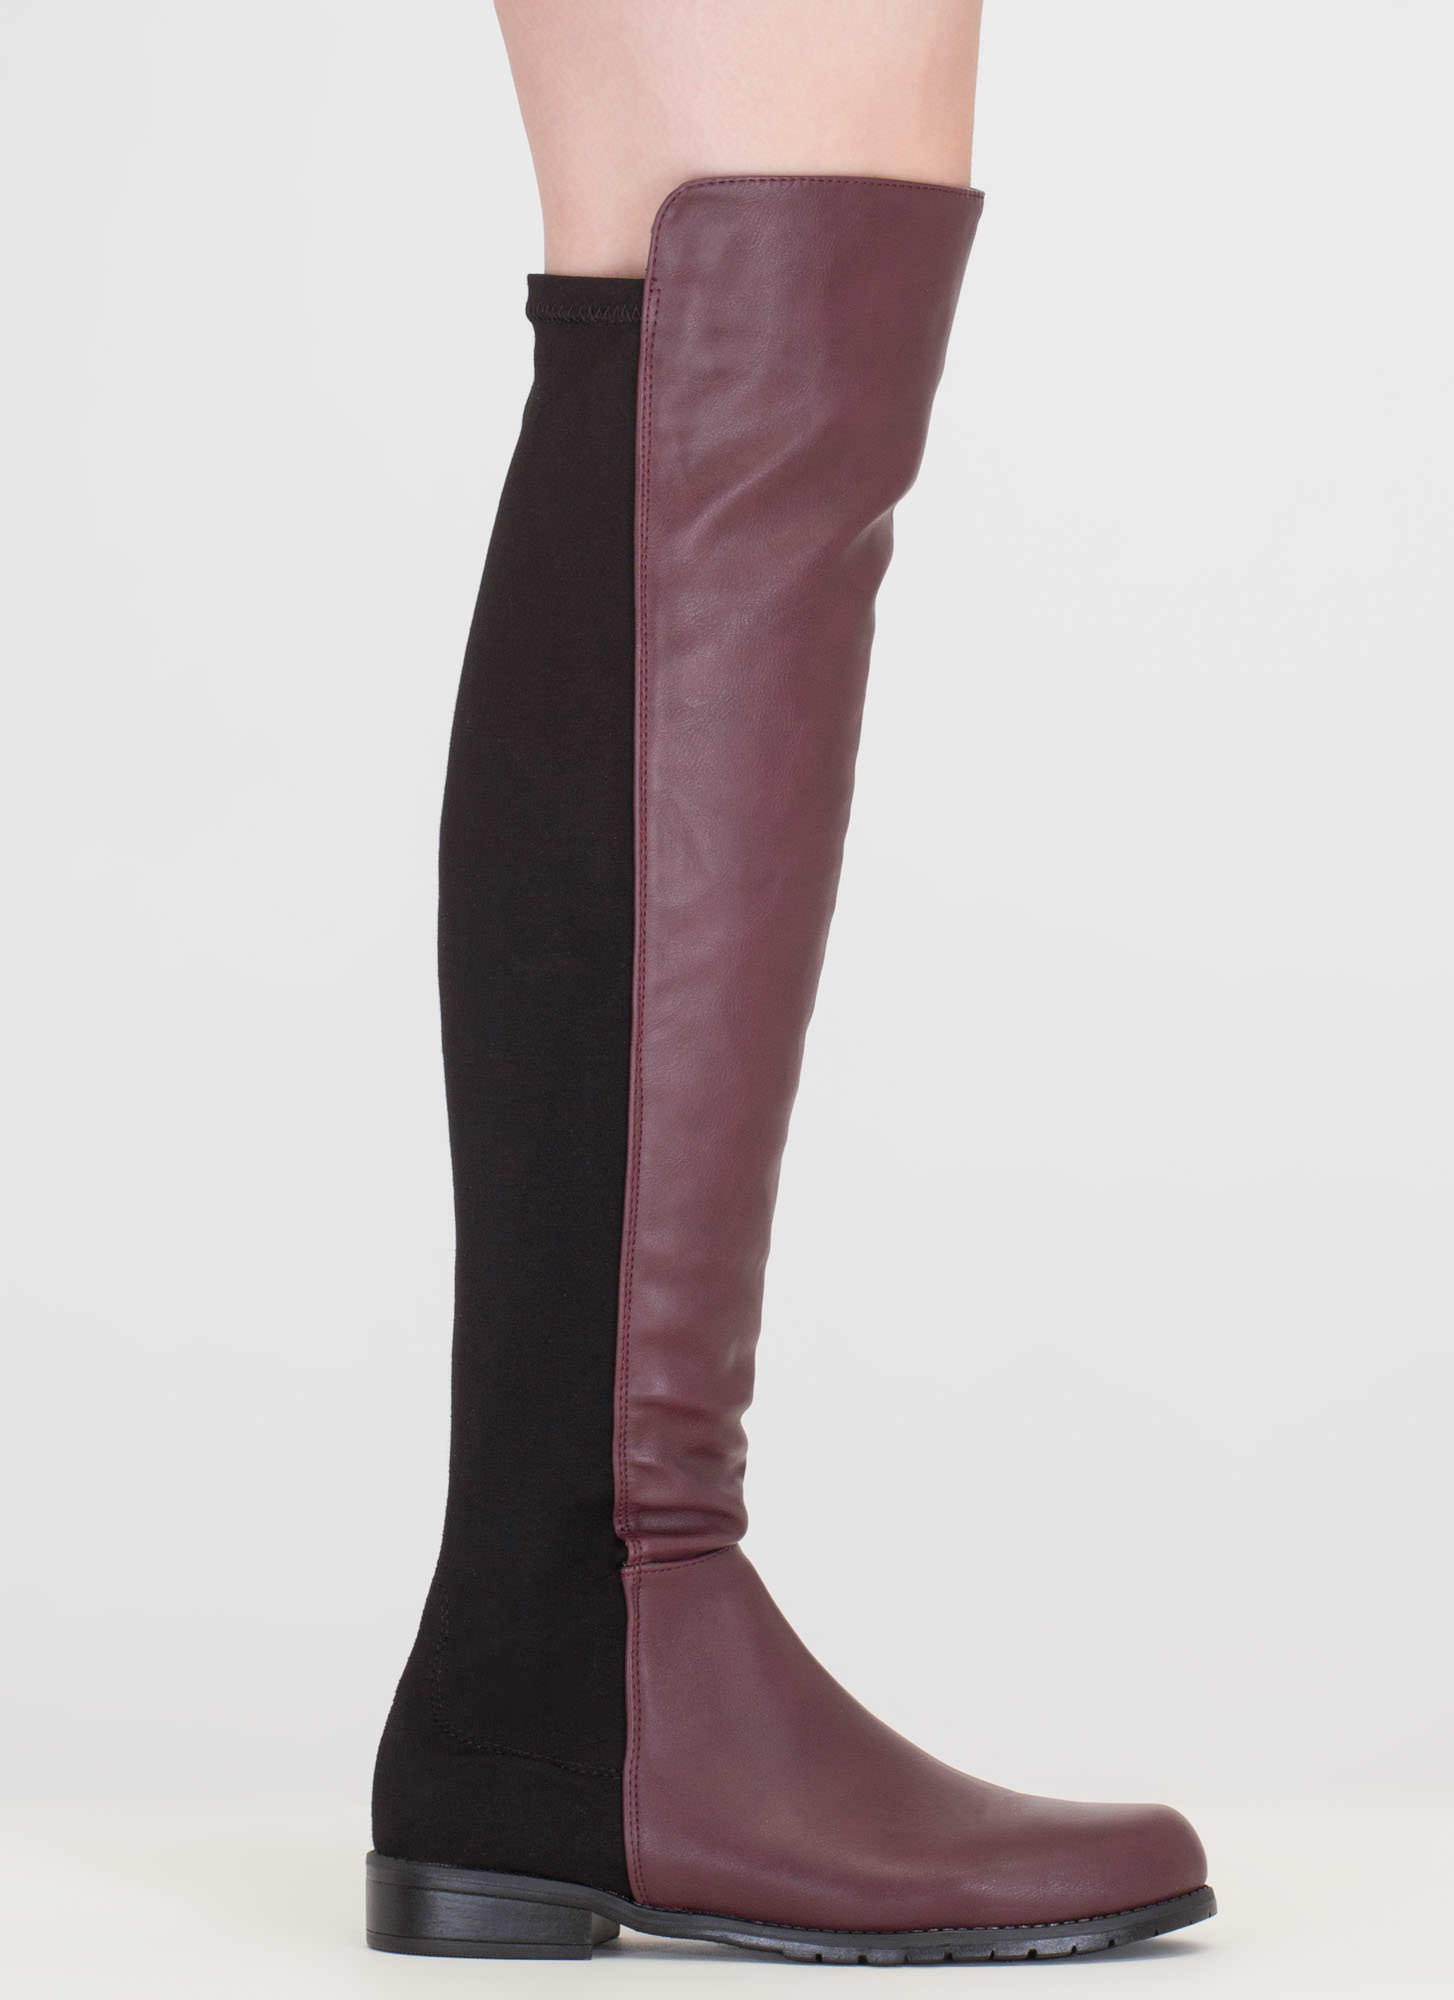 Score Slim Over-The-Knee Boots OXBLOOD